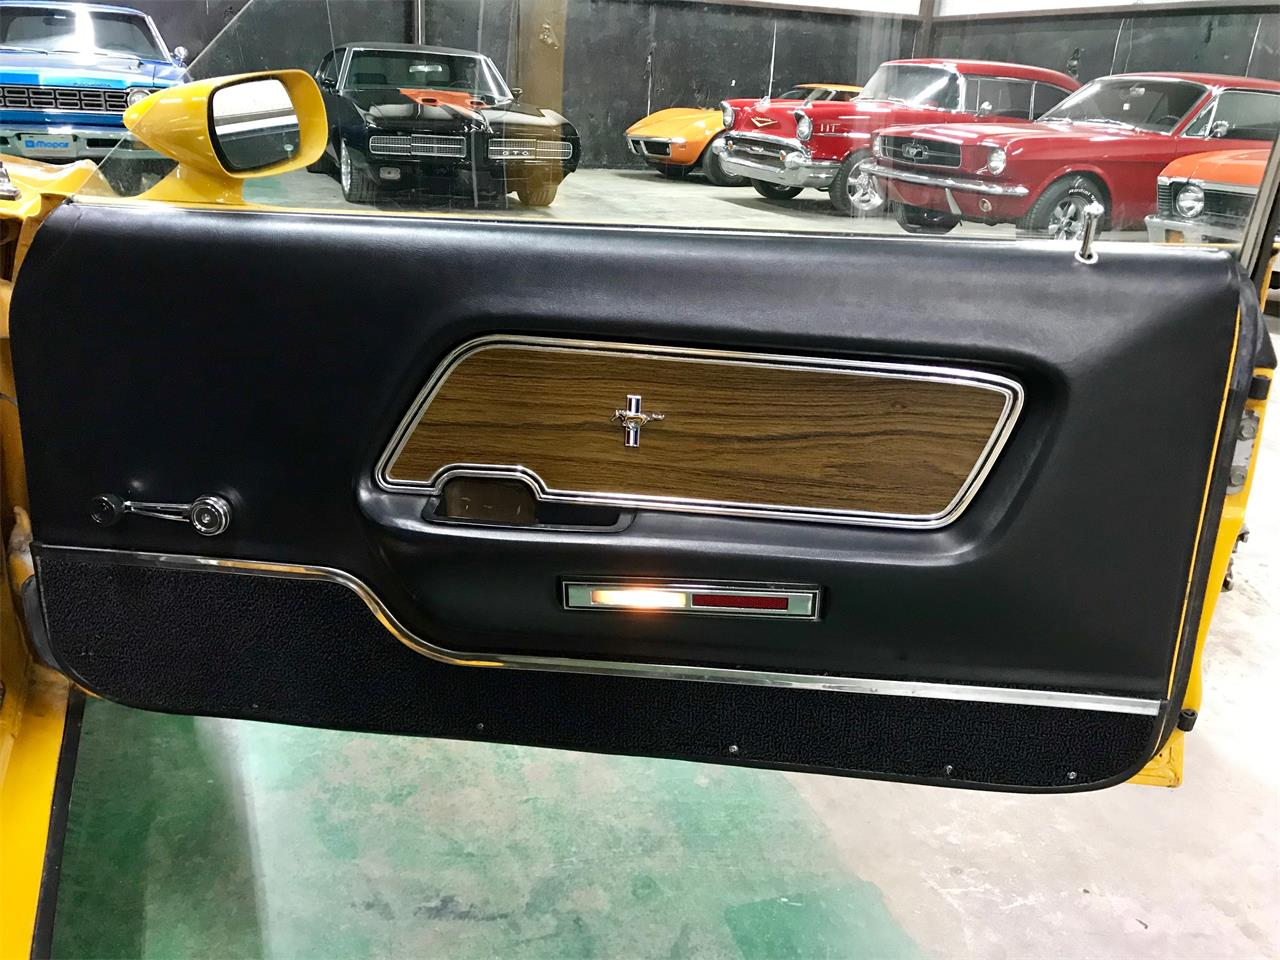 Large Picture of Classic 1970 Mustang Mach 1 located in Texas - $28,500.00 - QK0Z